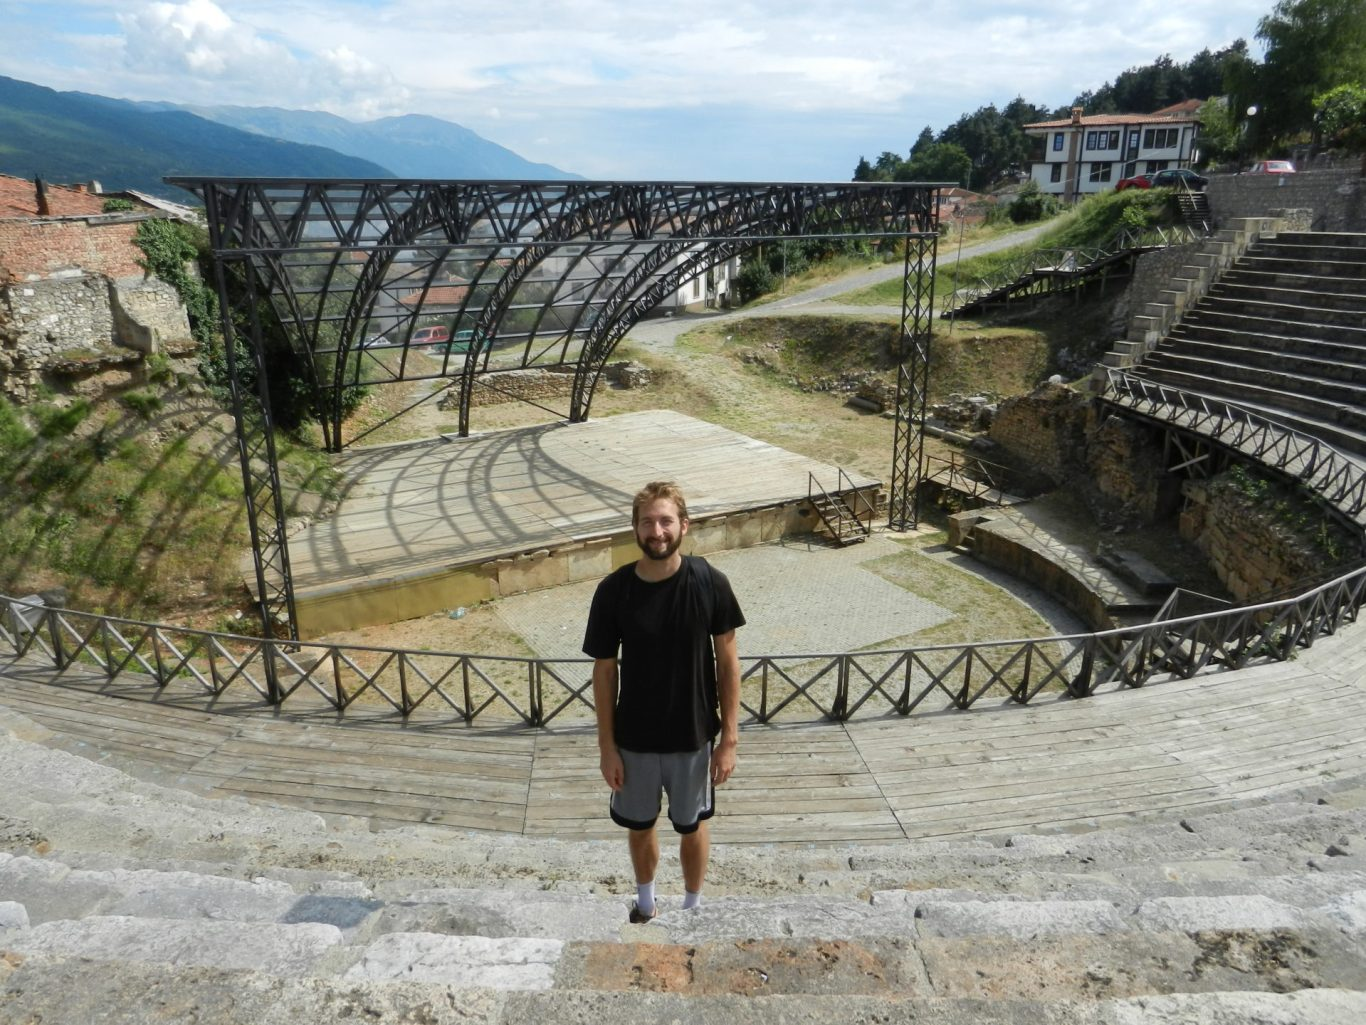 Nathanael in the Amphitheatre in Ohrid, Macedonia